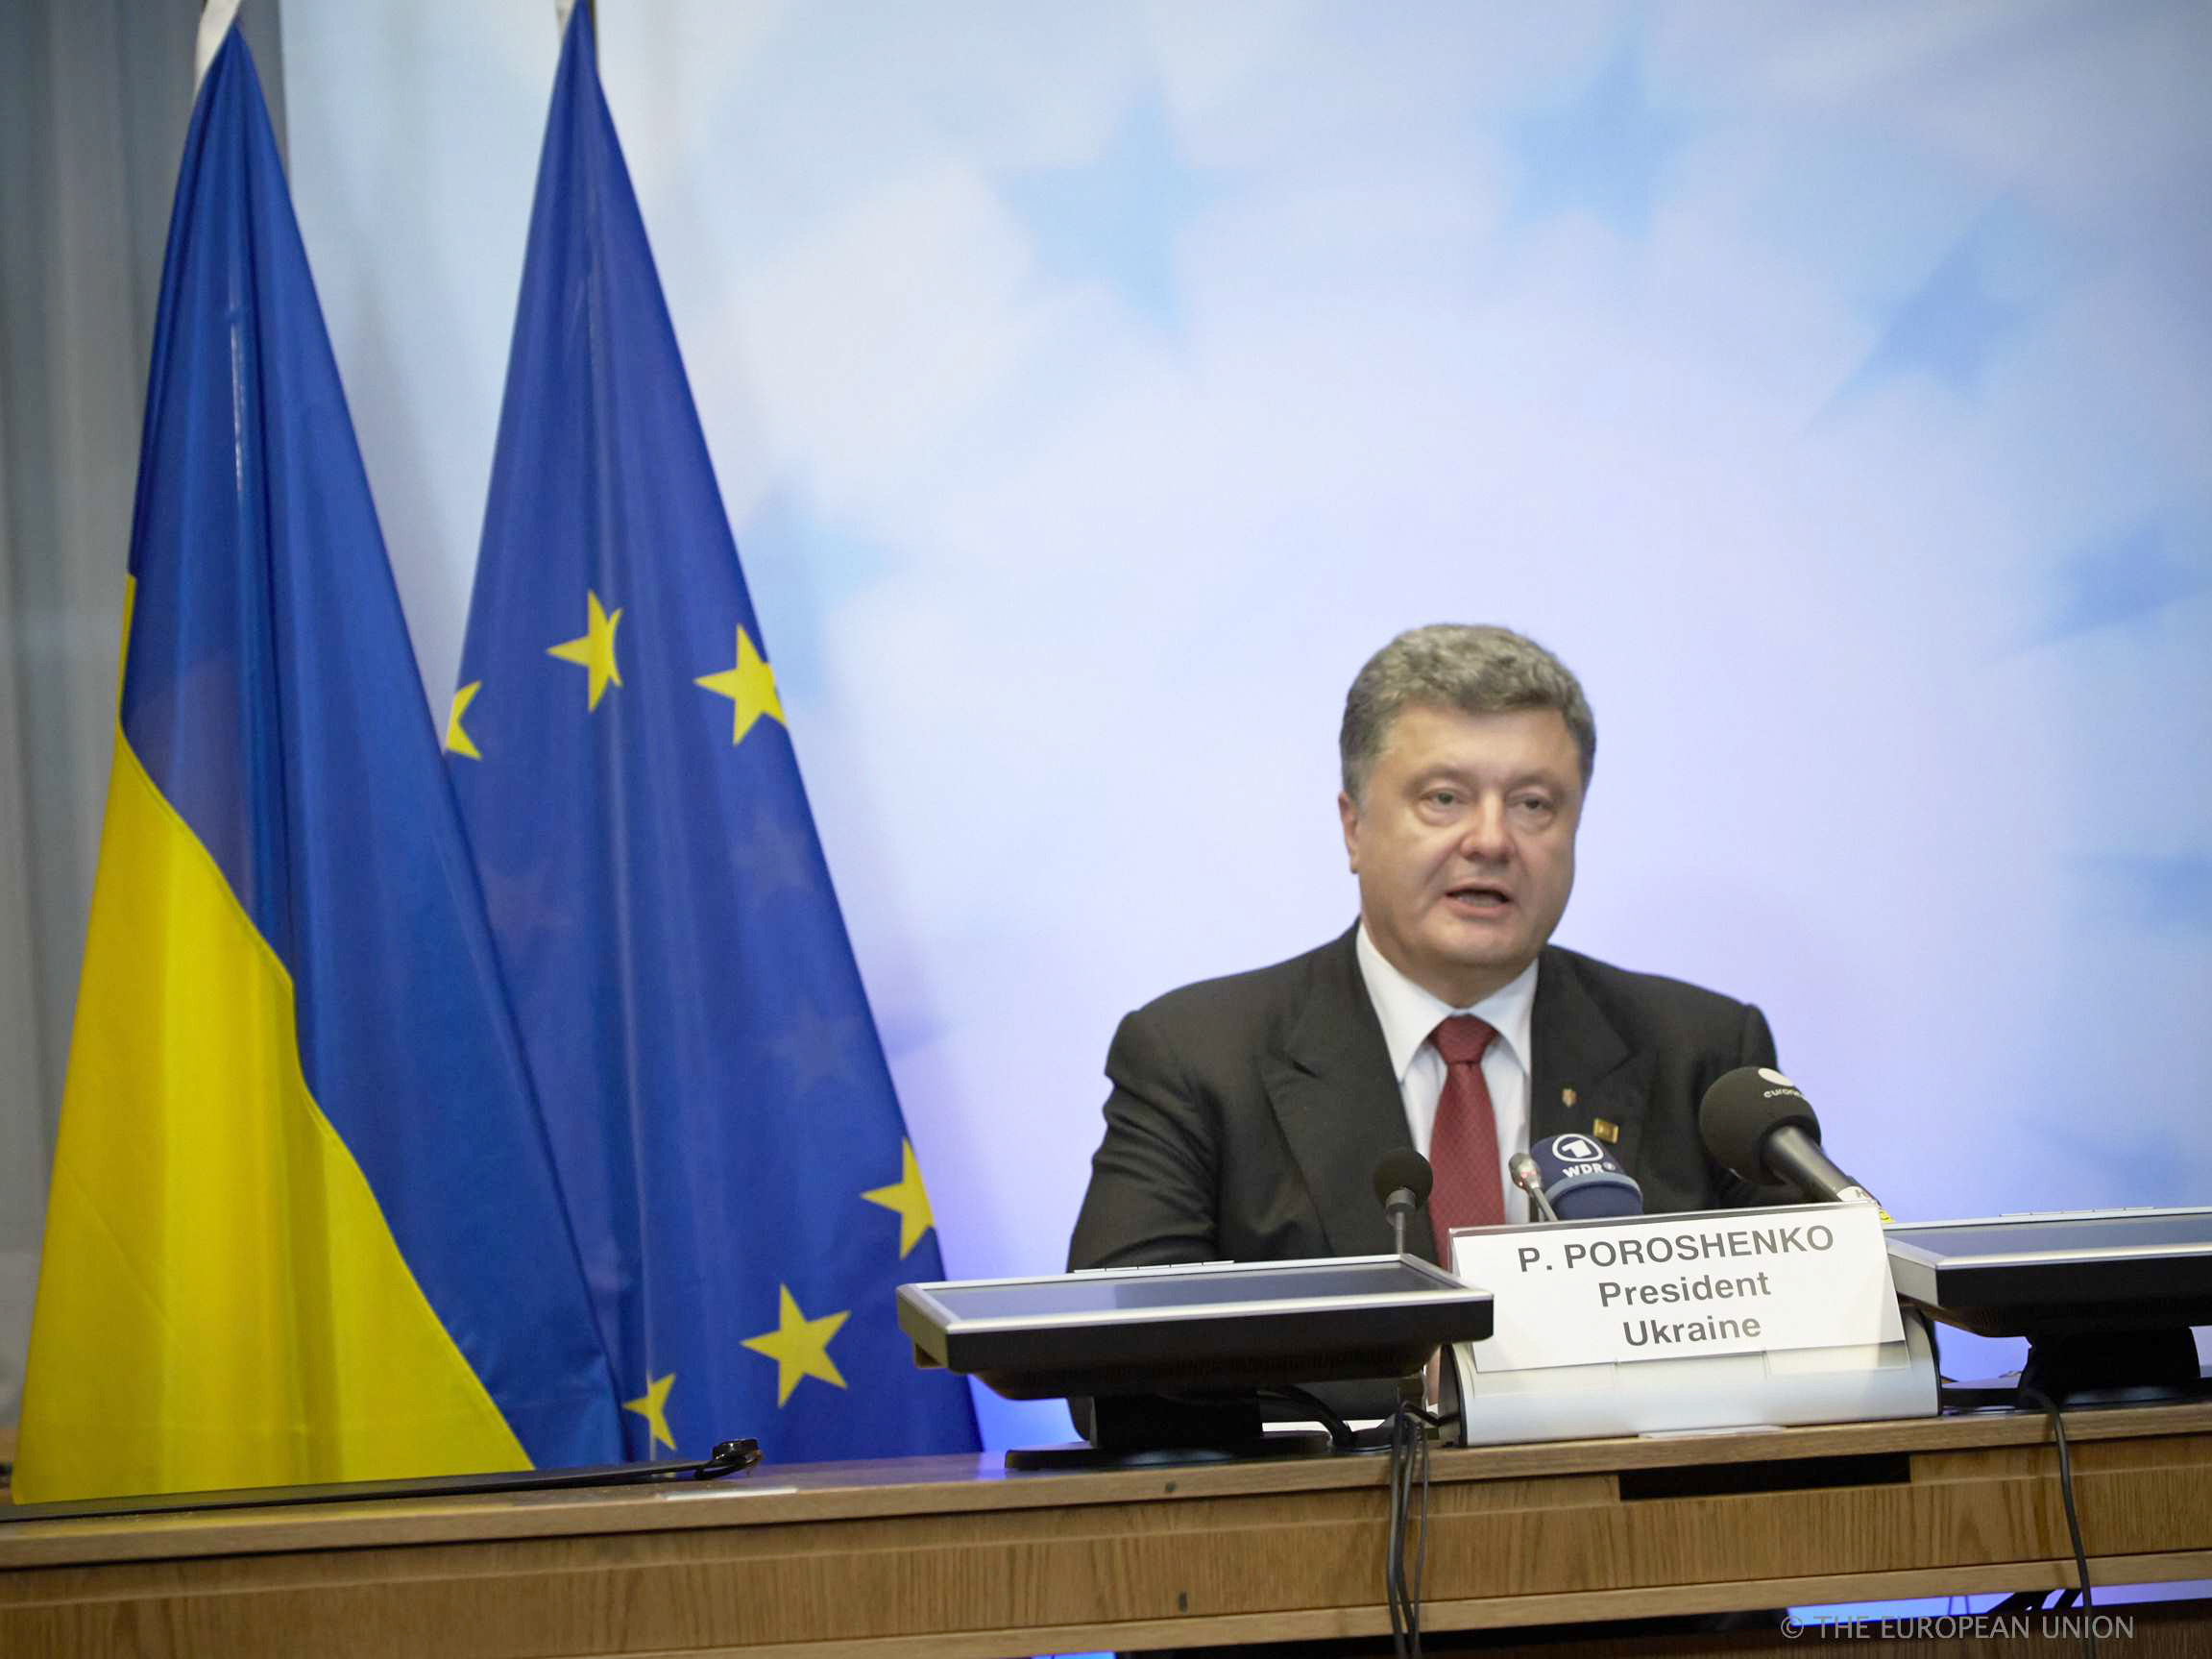 Special meeting of the European Council - Press conference by the Ukrainian President, Mr Petro Poroshenko